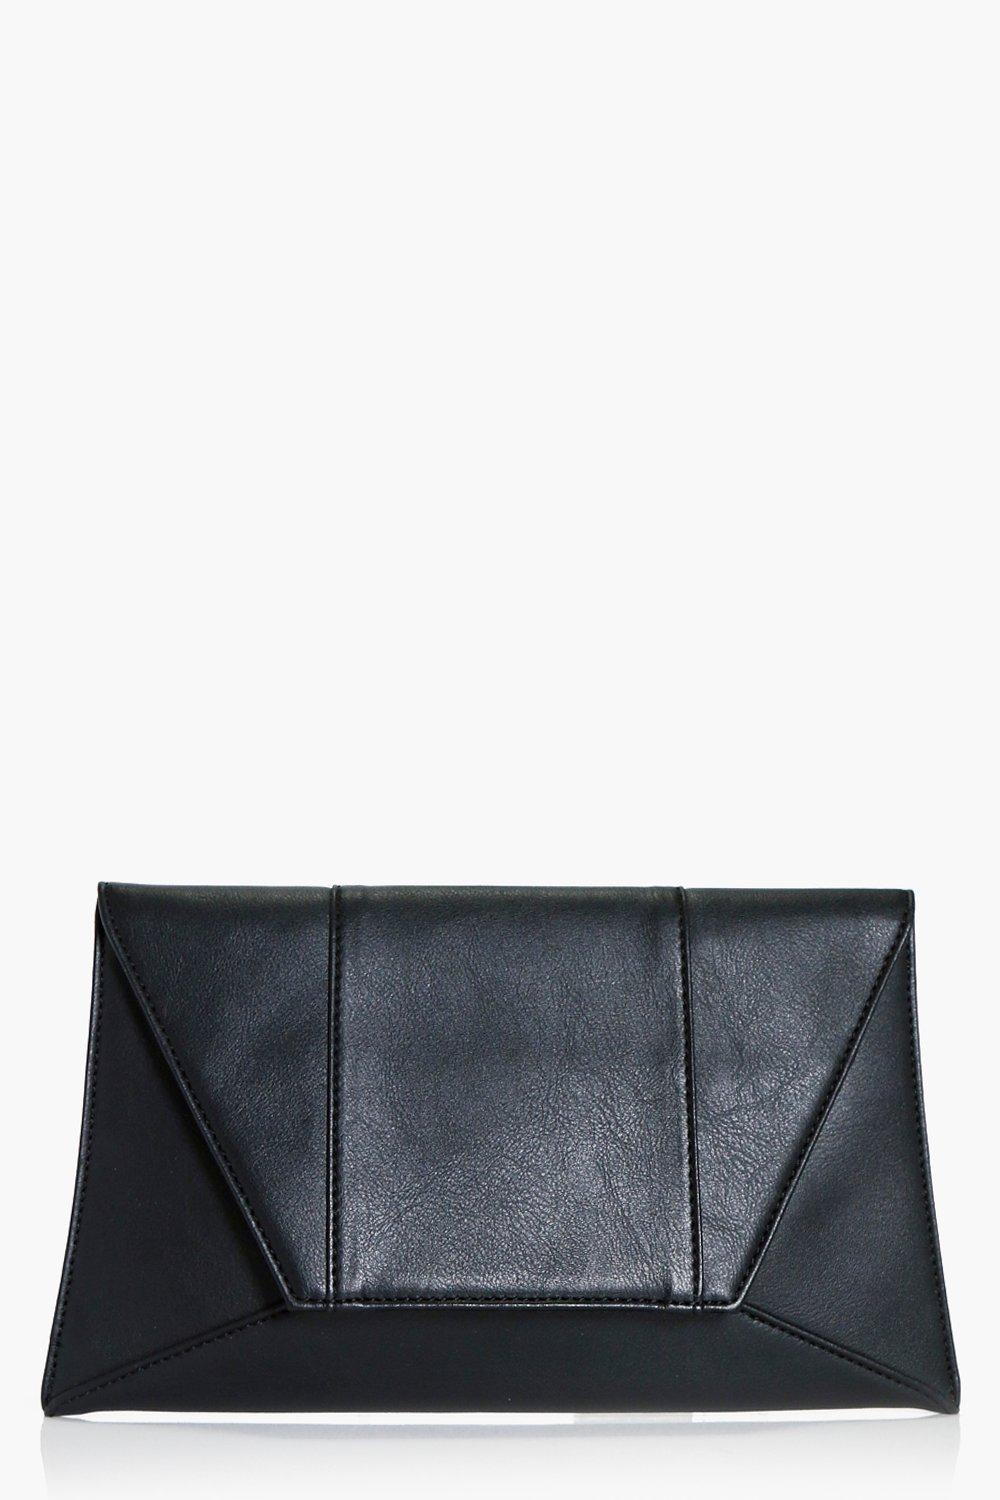 Panelled Envelope Clutch - black - Faith Panelled